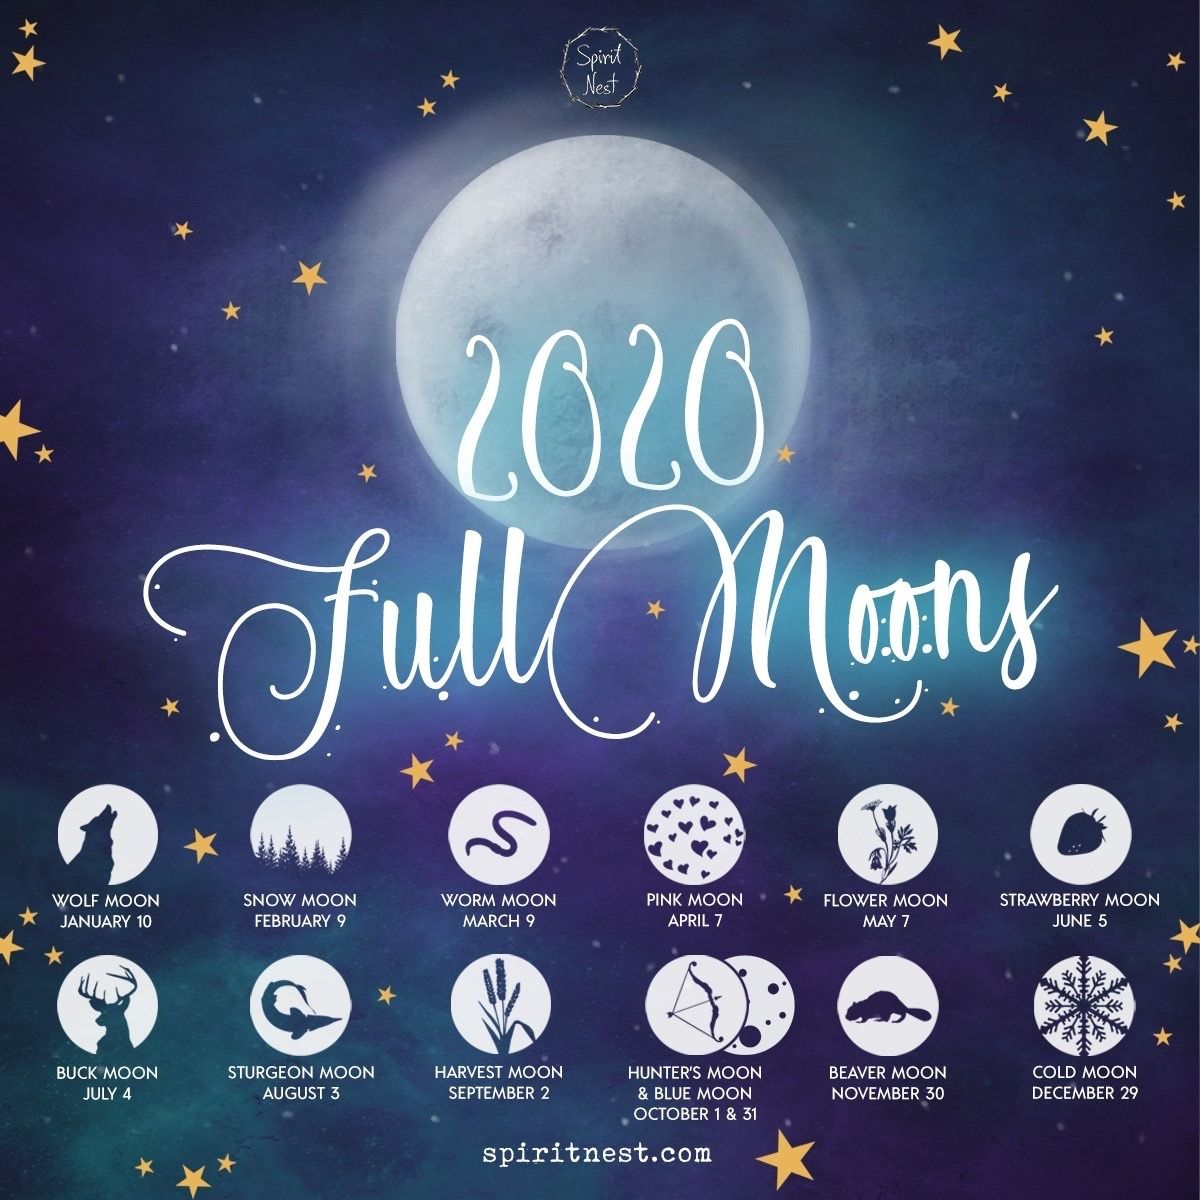 Pin By Amber Bartmus On Energy Dreams In 2020 Moon Spells Cold Moon Full Moon